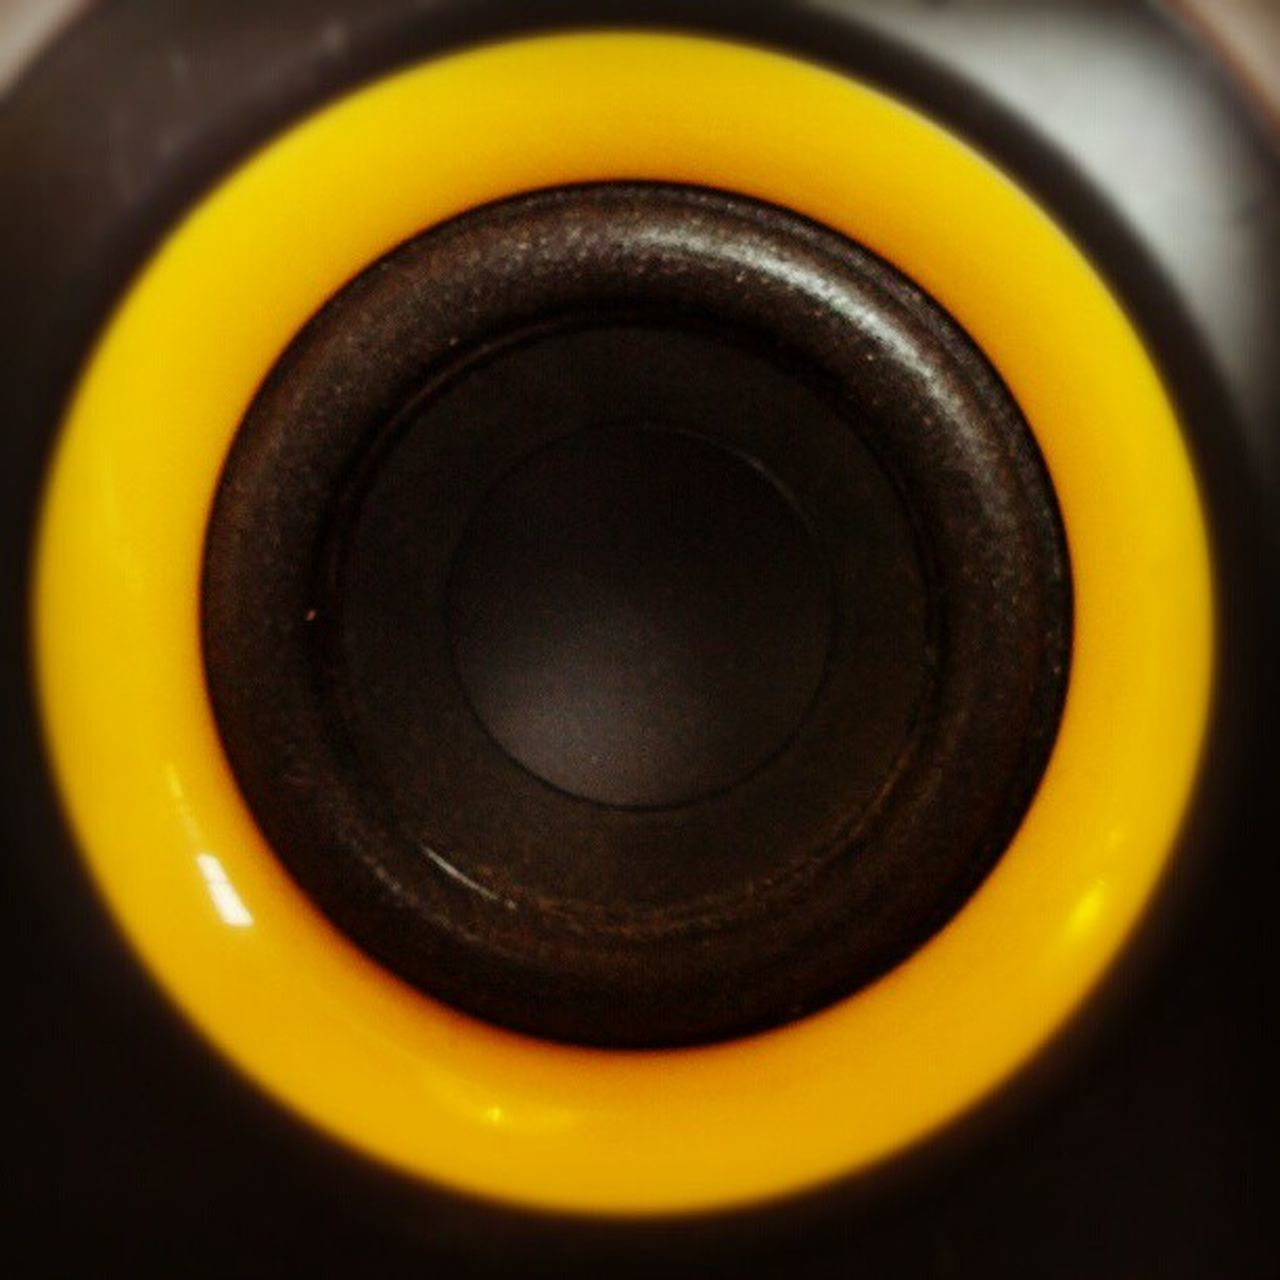 camera - photographic equipment, black color, close-up, yellow, sound recording equipment, photography themes, no people, technology, arts culture and entertainment, recording studio, studio shot, indoors, film industry, day